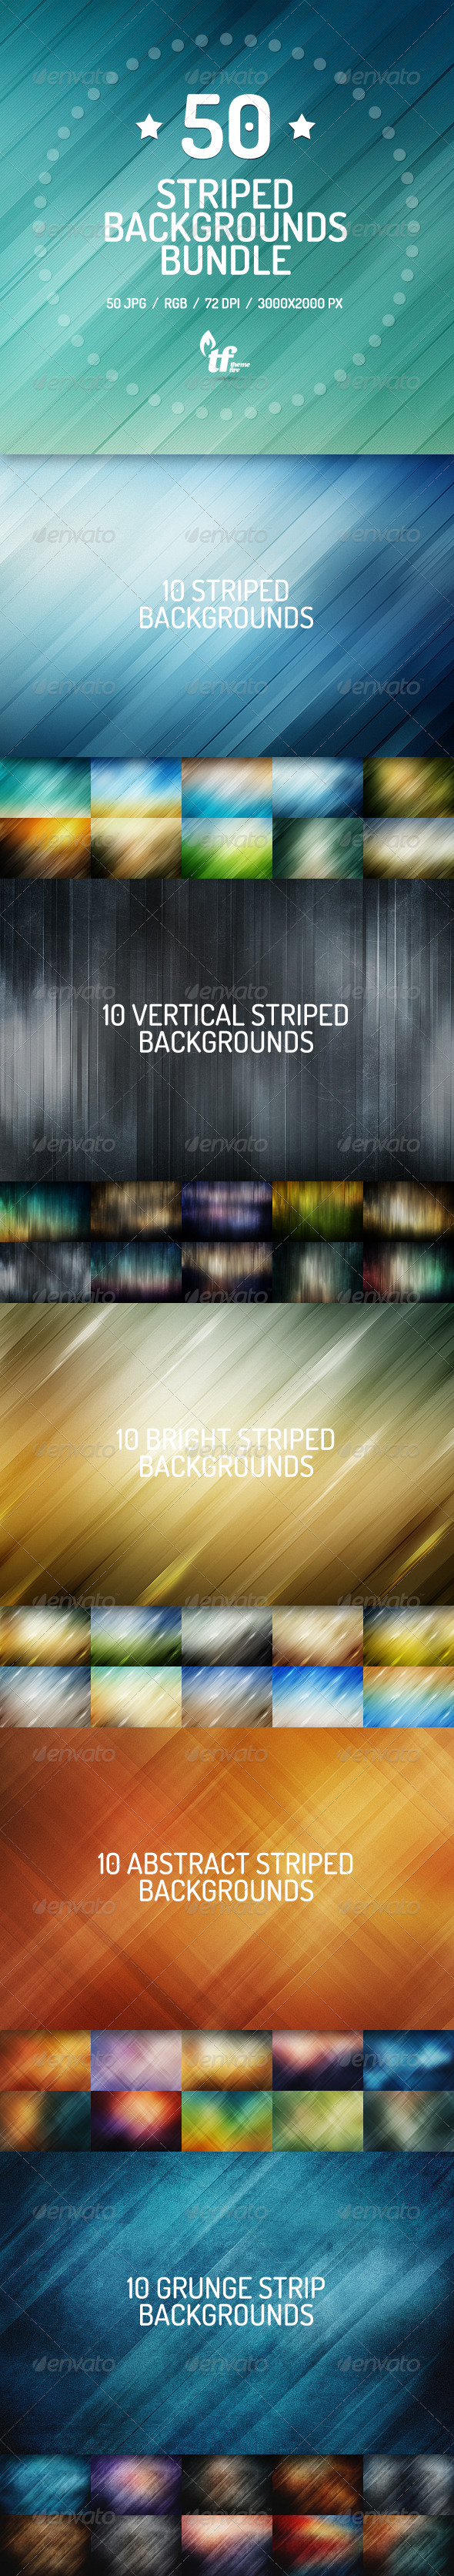 GraphicRiver 50 Striped Backgrounds Bundle 7772612